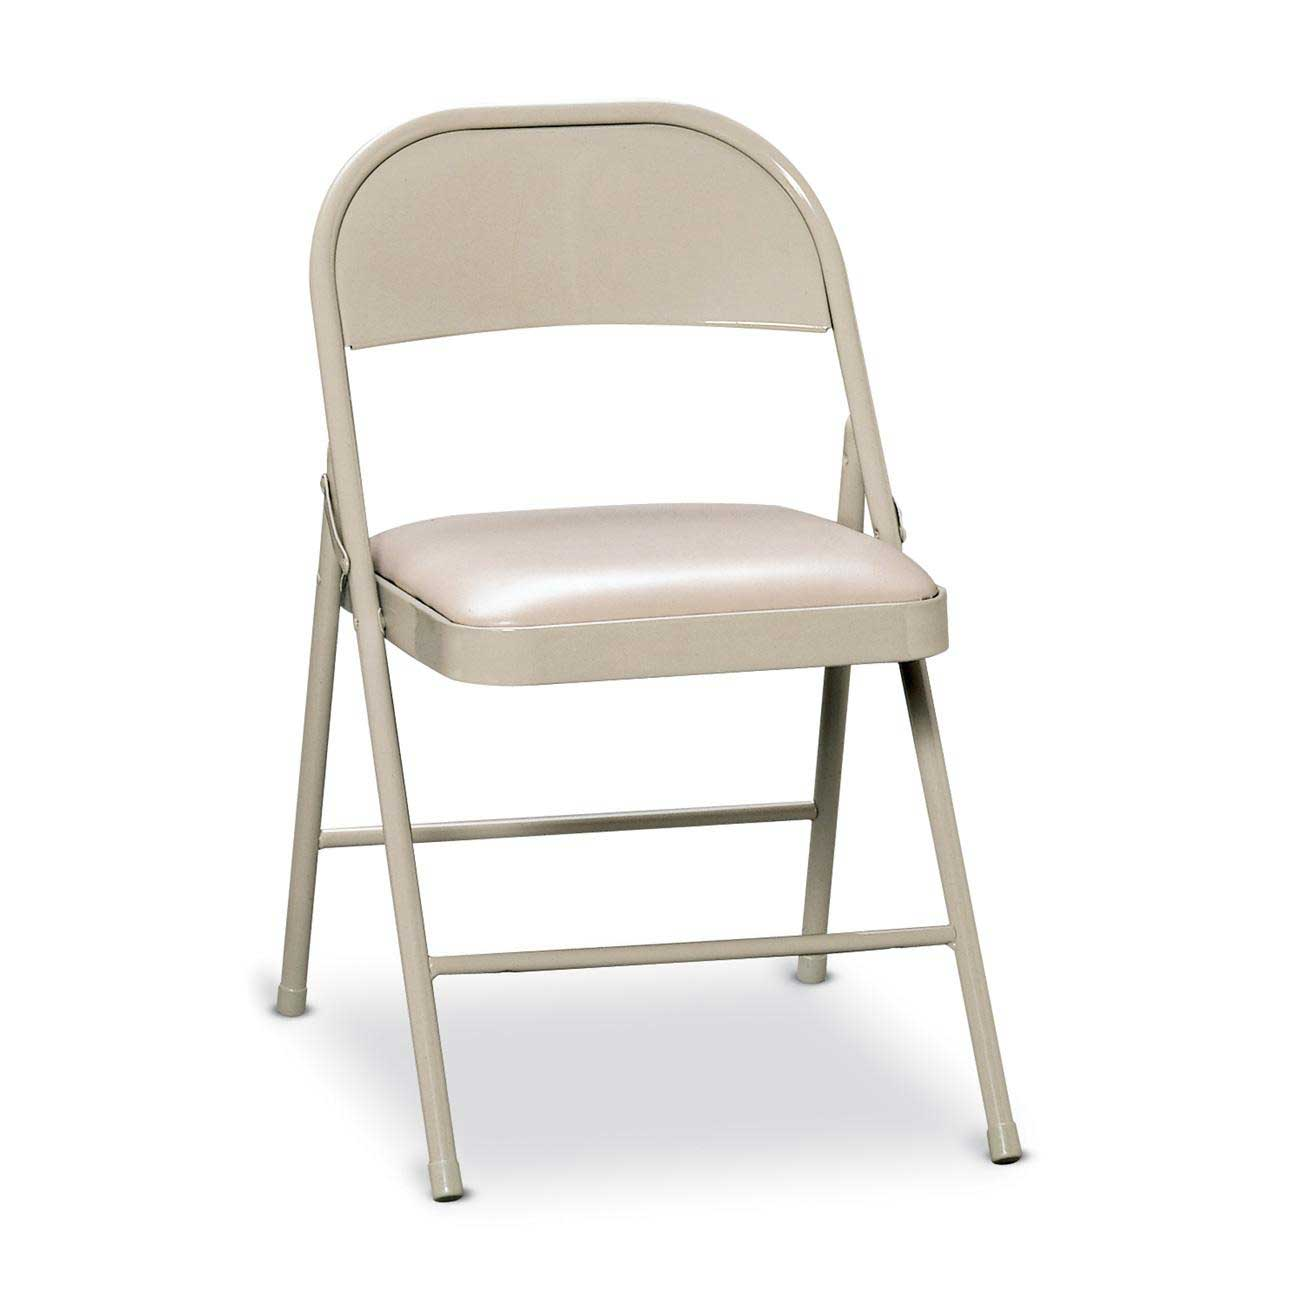 folding chairs reviews : Office Furniture